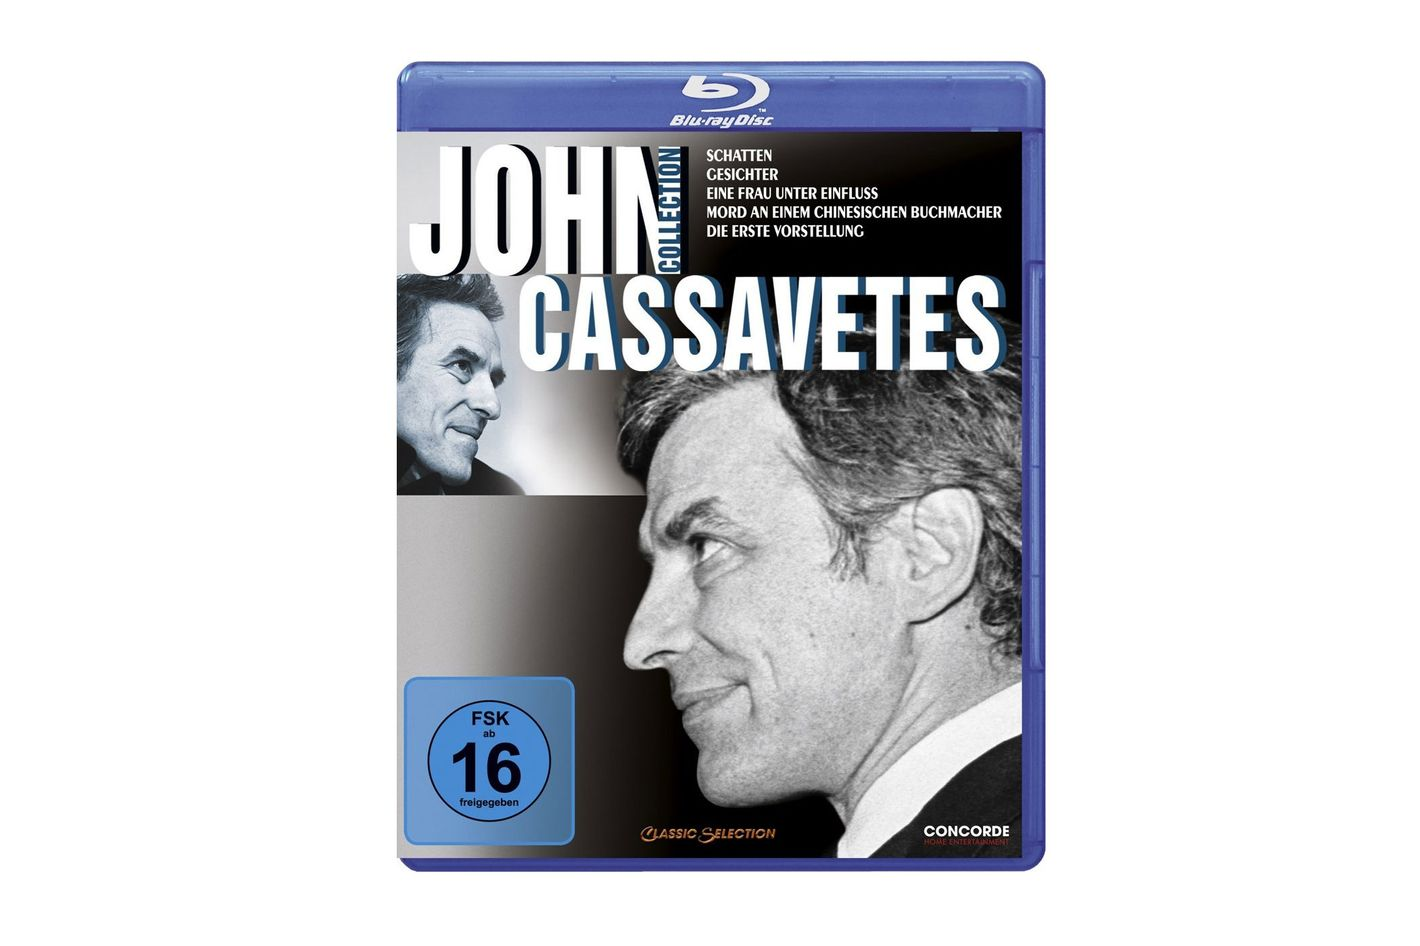 John Cassavetes Collection (5 Films)